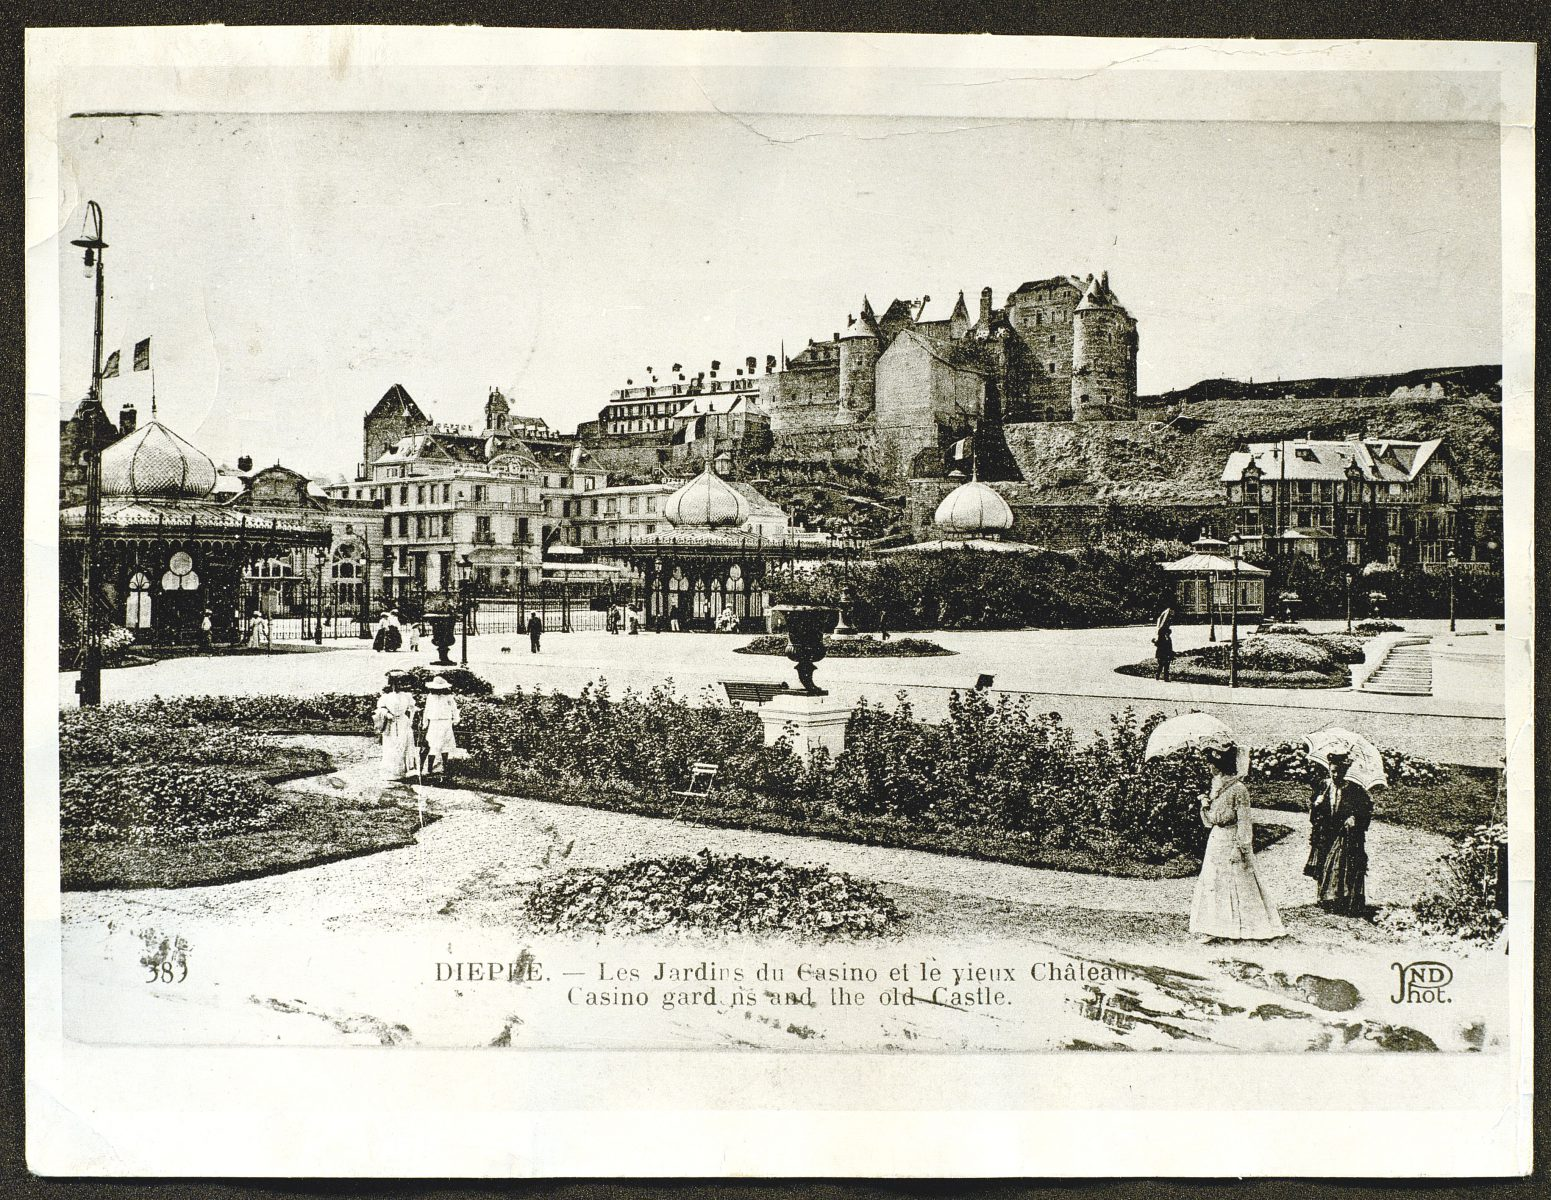 Casino, Old Castle and baths at Dieppe